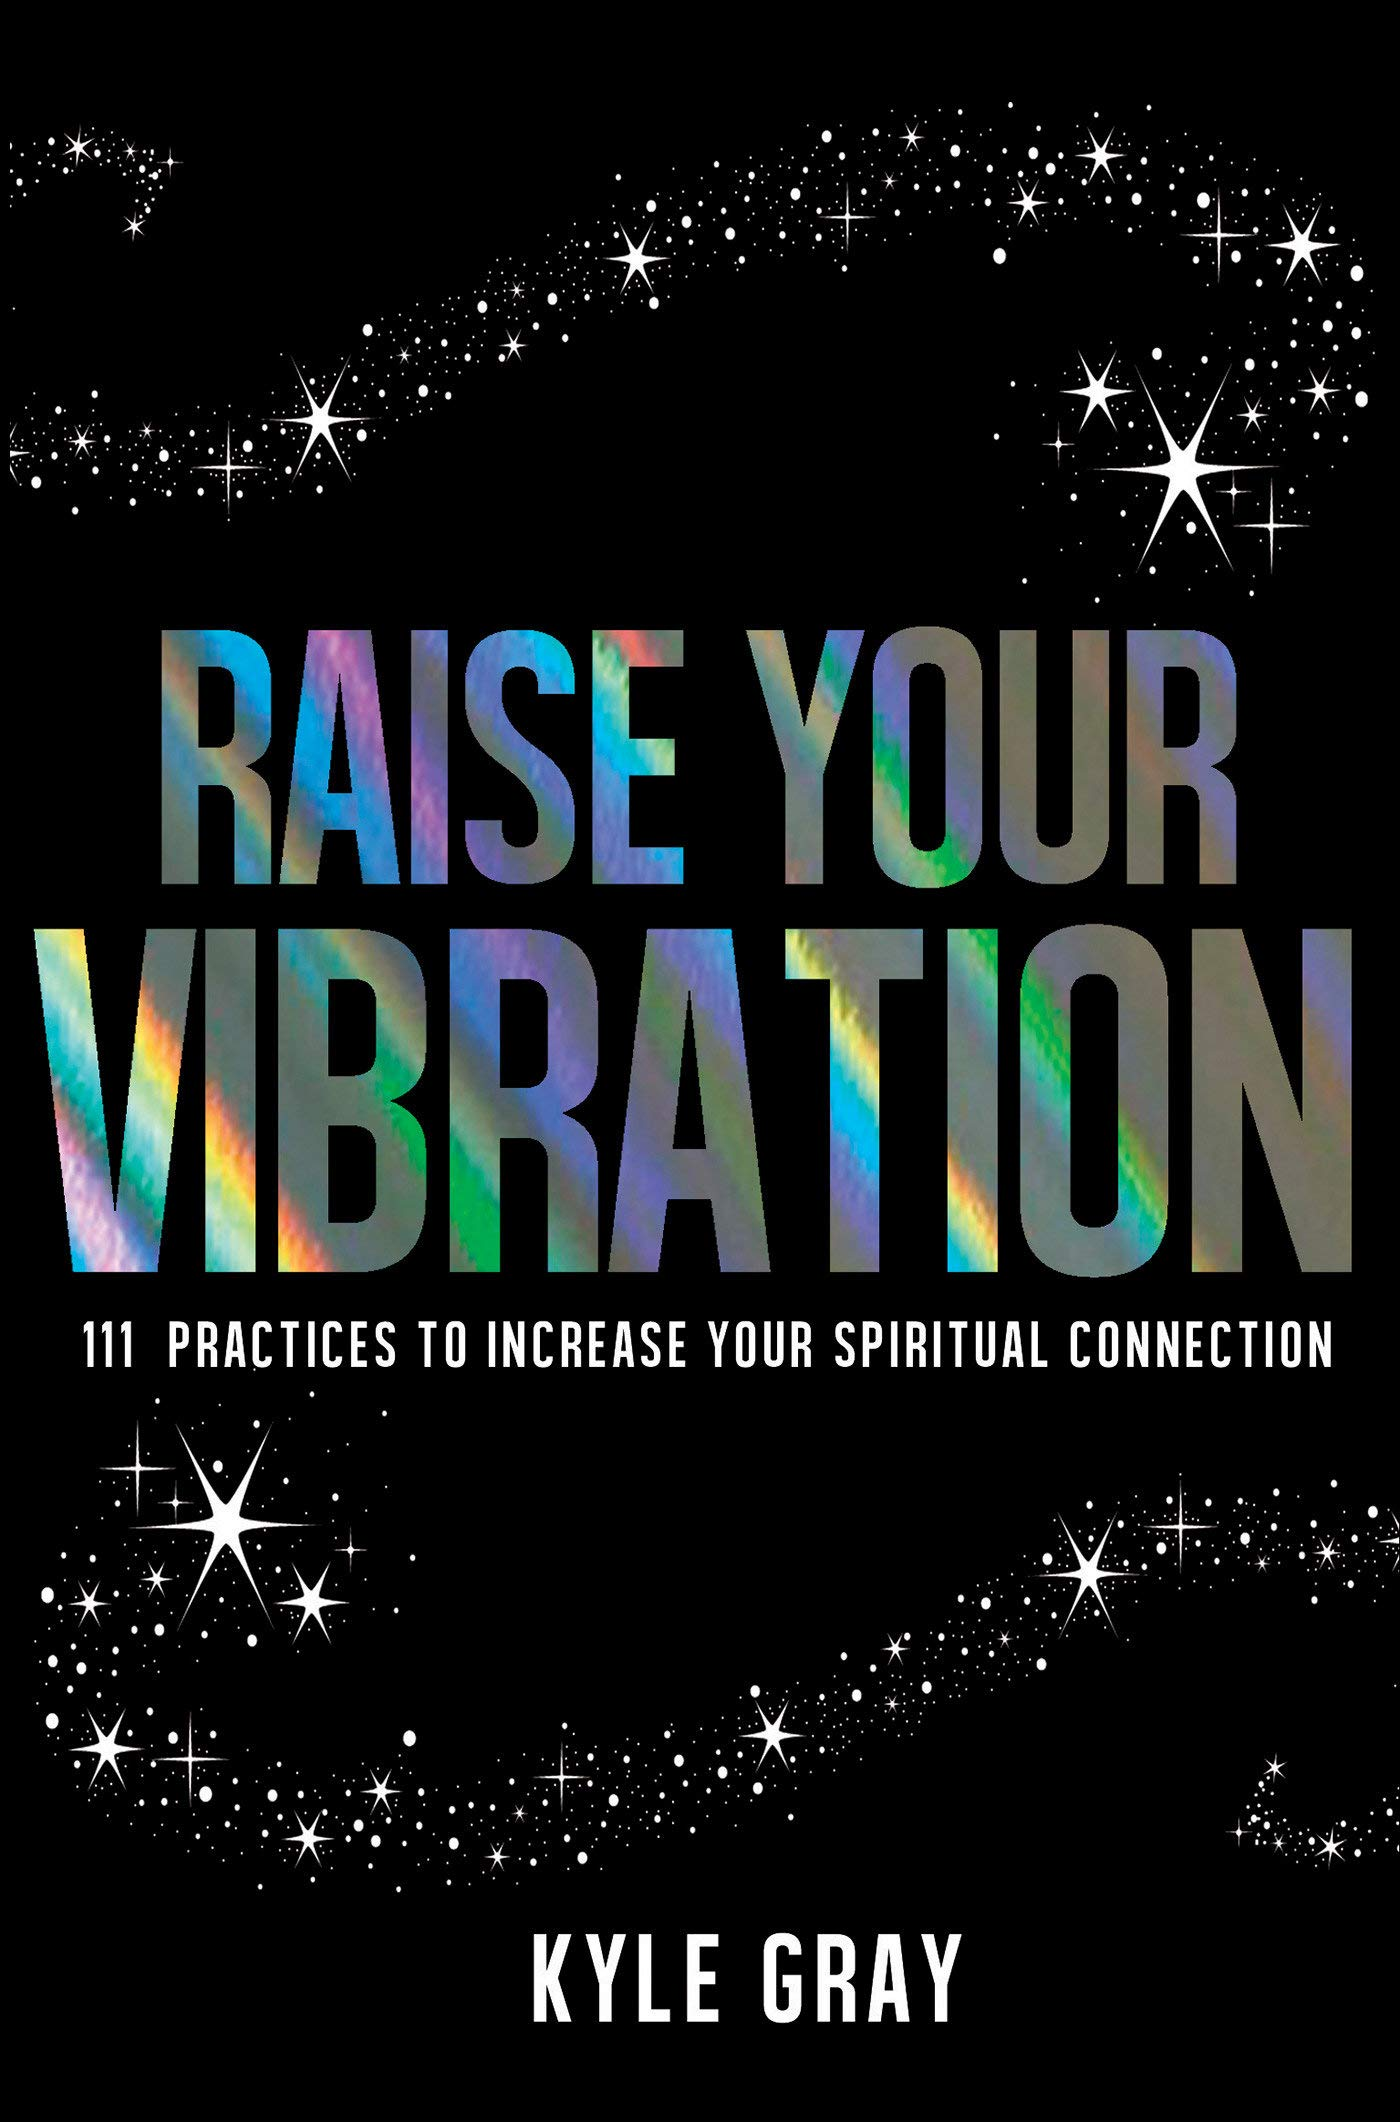 Raise Your Vibration: 111 Practices to Increase Your Spiritual